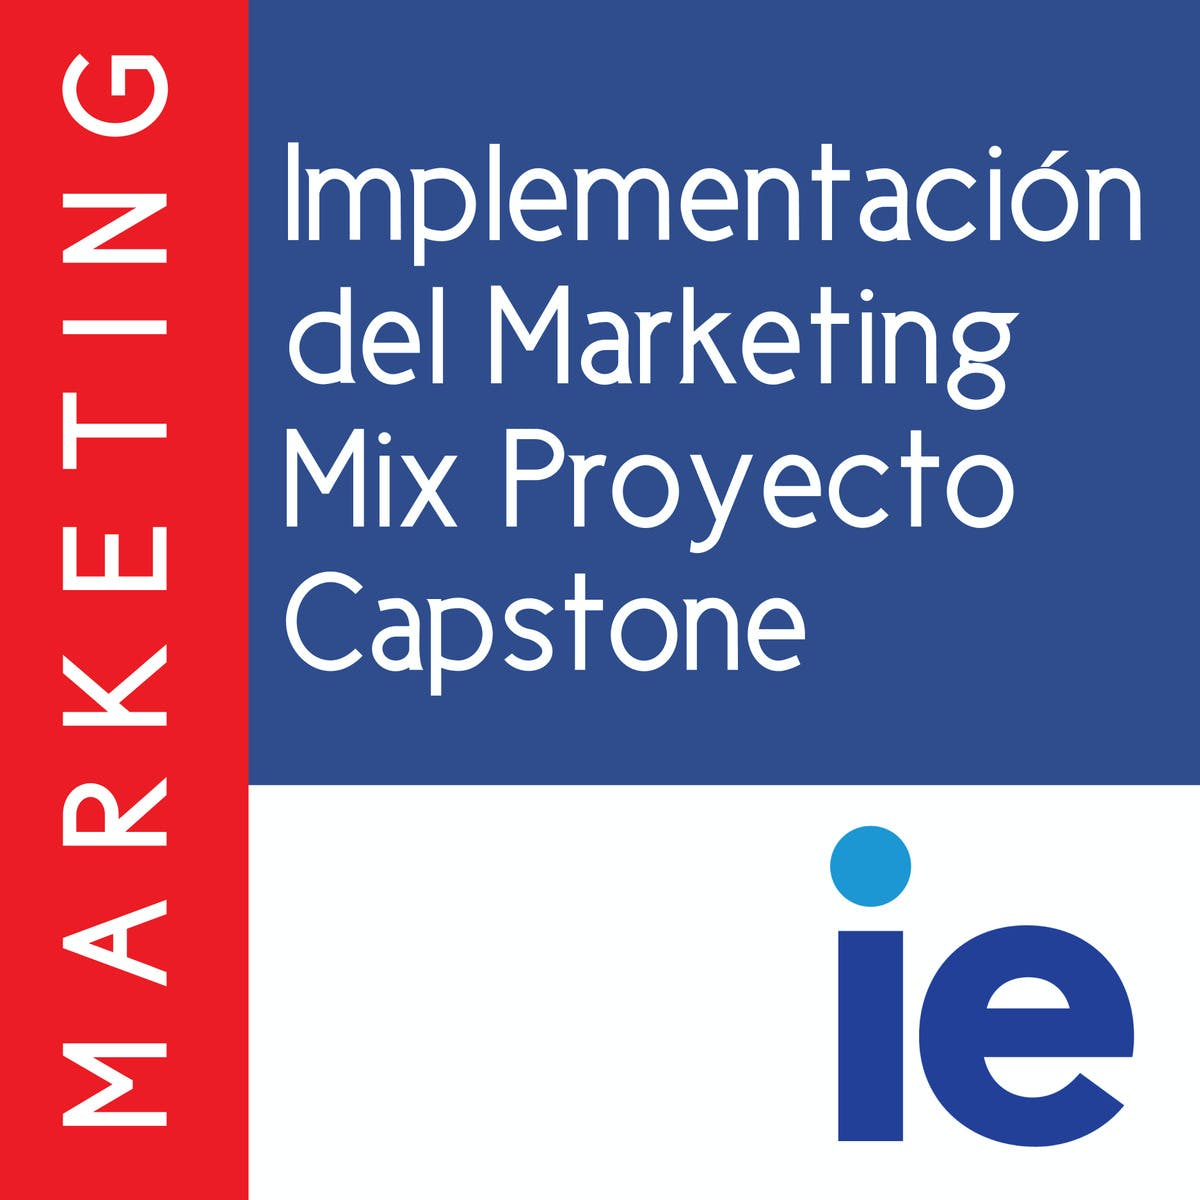 Implementación del Marketing Mix Proyecto Capstone